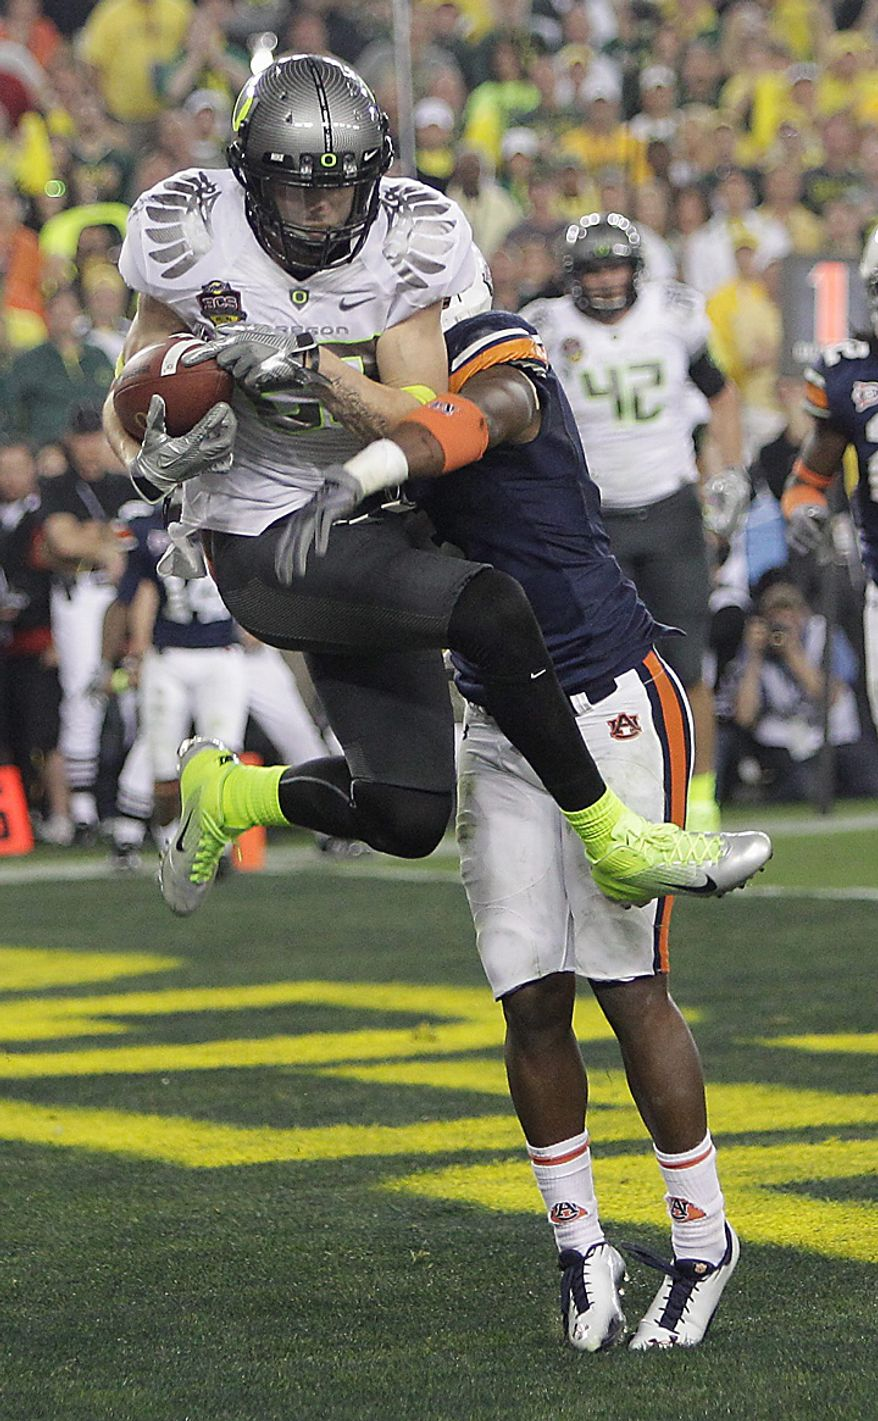 Oregon's Jeff Maehl (23) catches a 2-point conversion as Auburn's Zac Etheridge defends during the second half of the BCS national championship NCAA college football game on Monday, Jan. 10, 2011, in Glendale, Ariz. (AP Photo/Matt York)